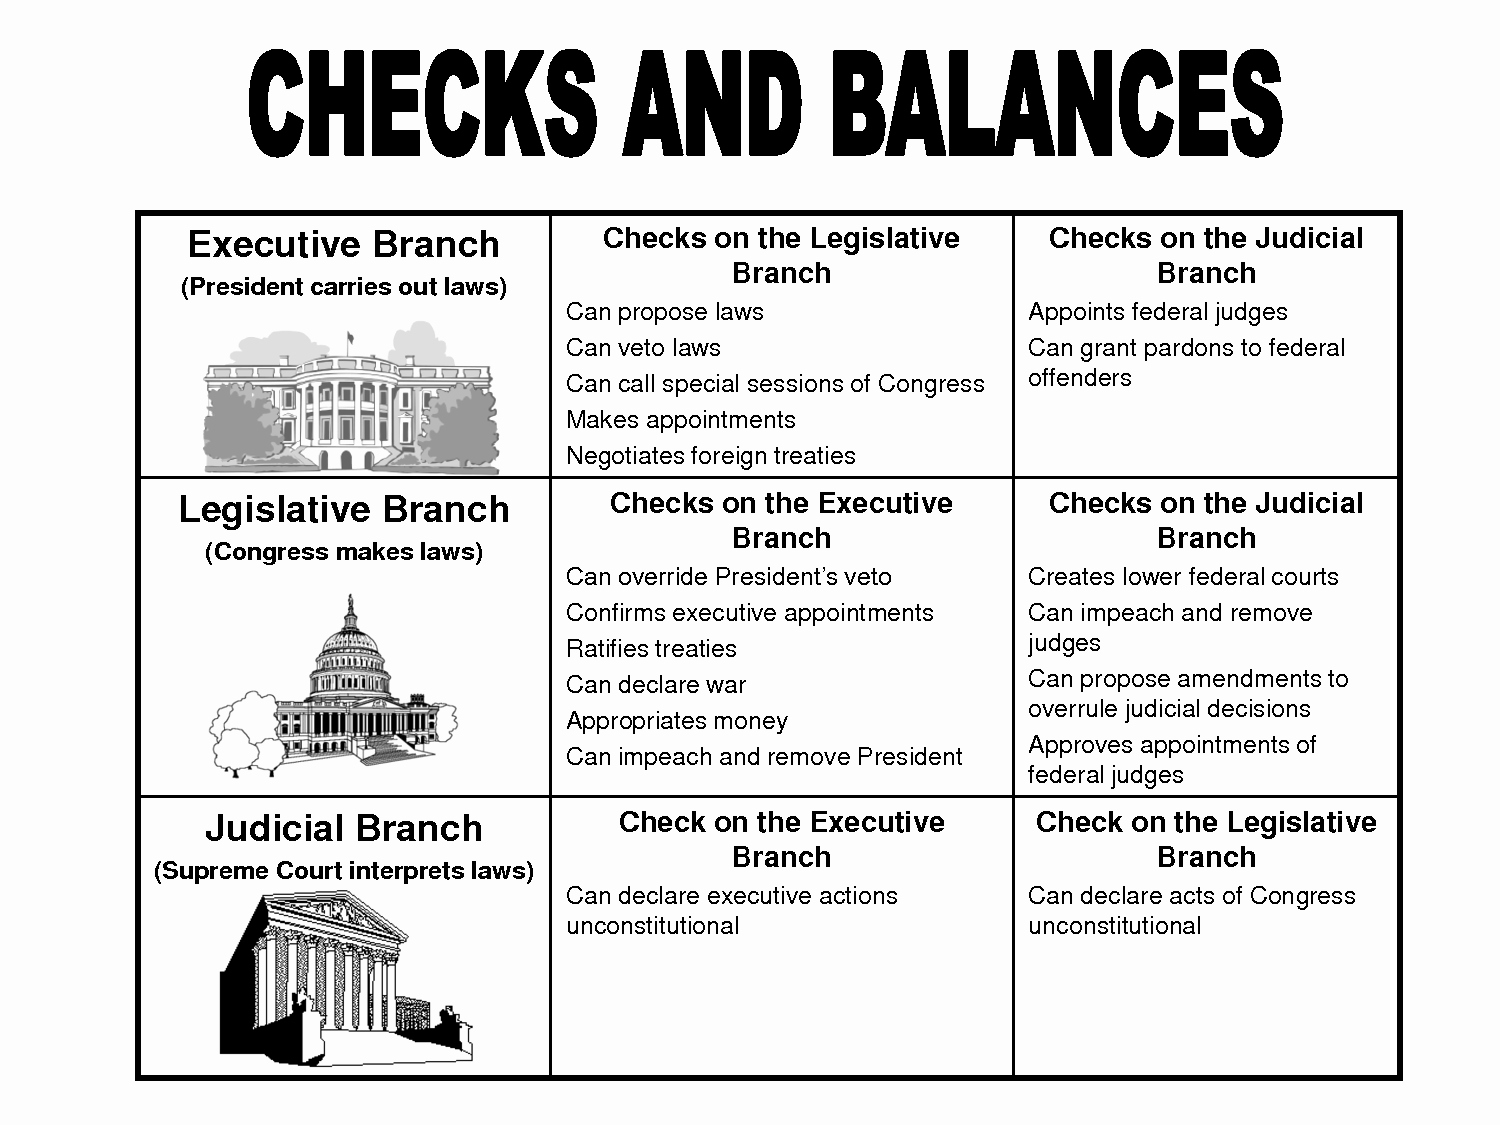 Checks and Balances Worksheet Answers Luxury Another Characteristic Of Democracy Involves the